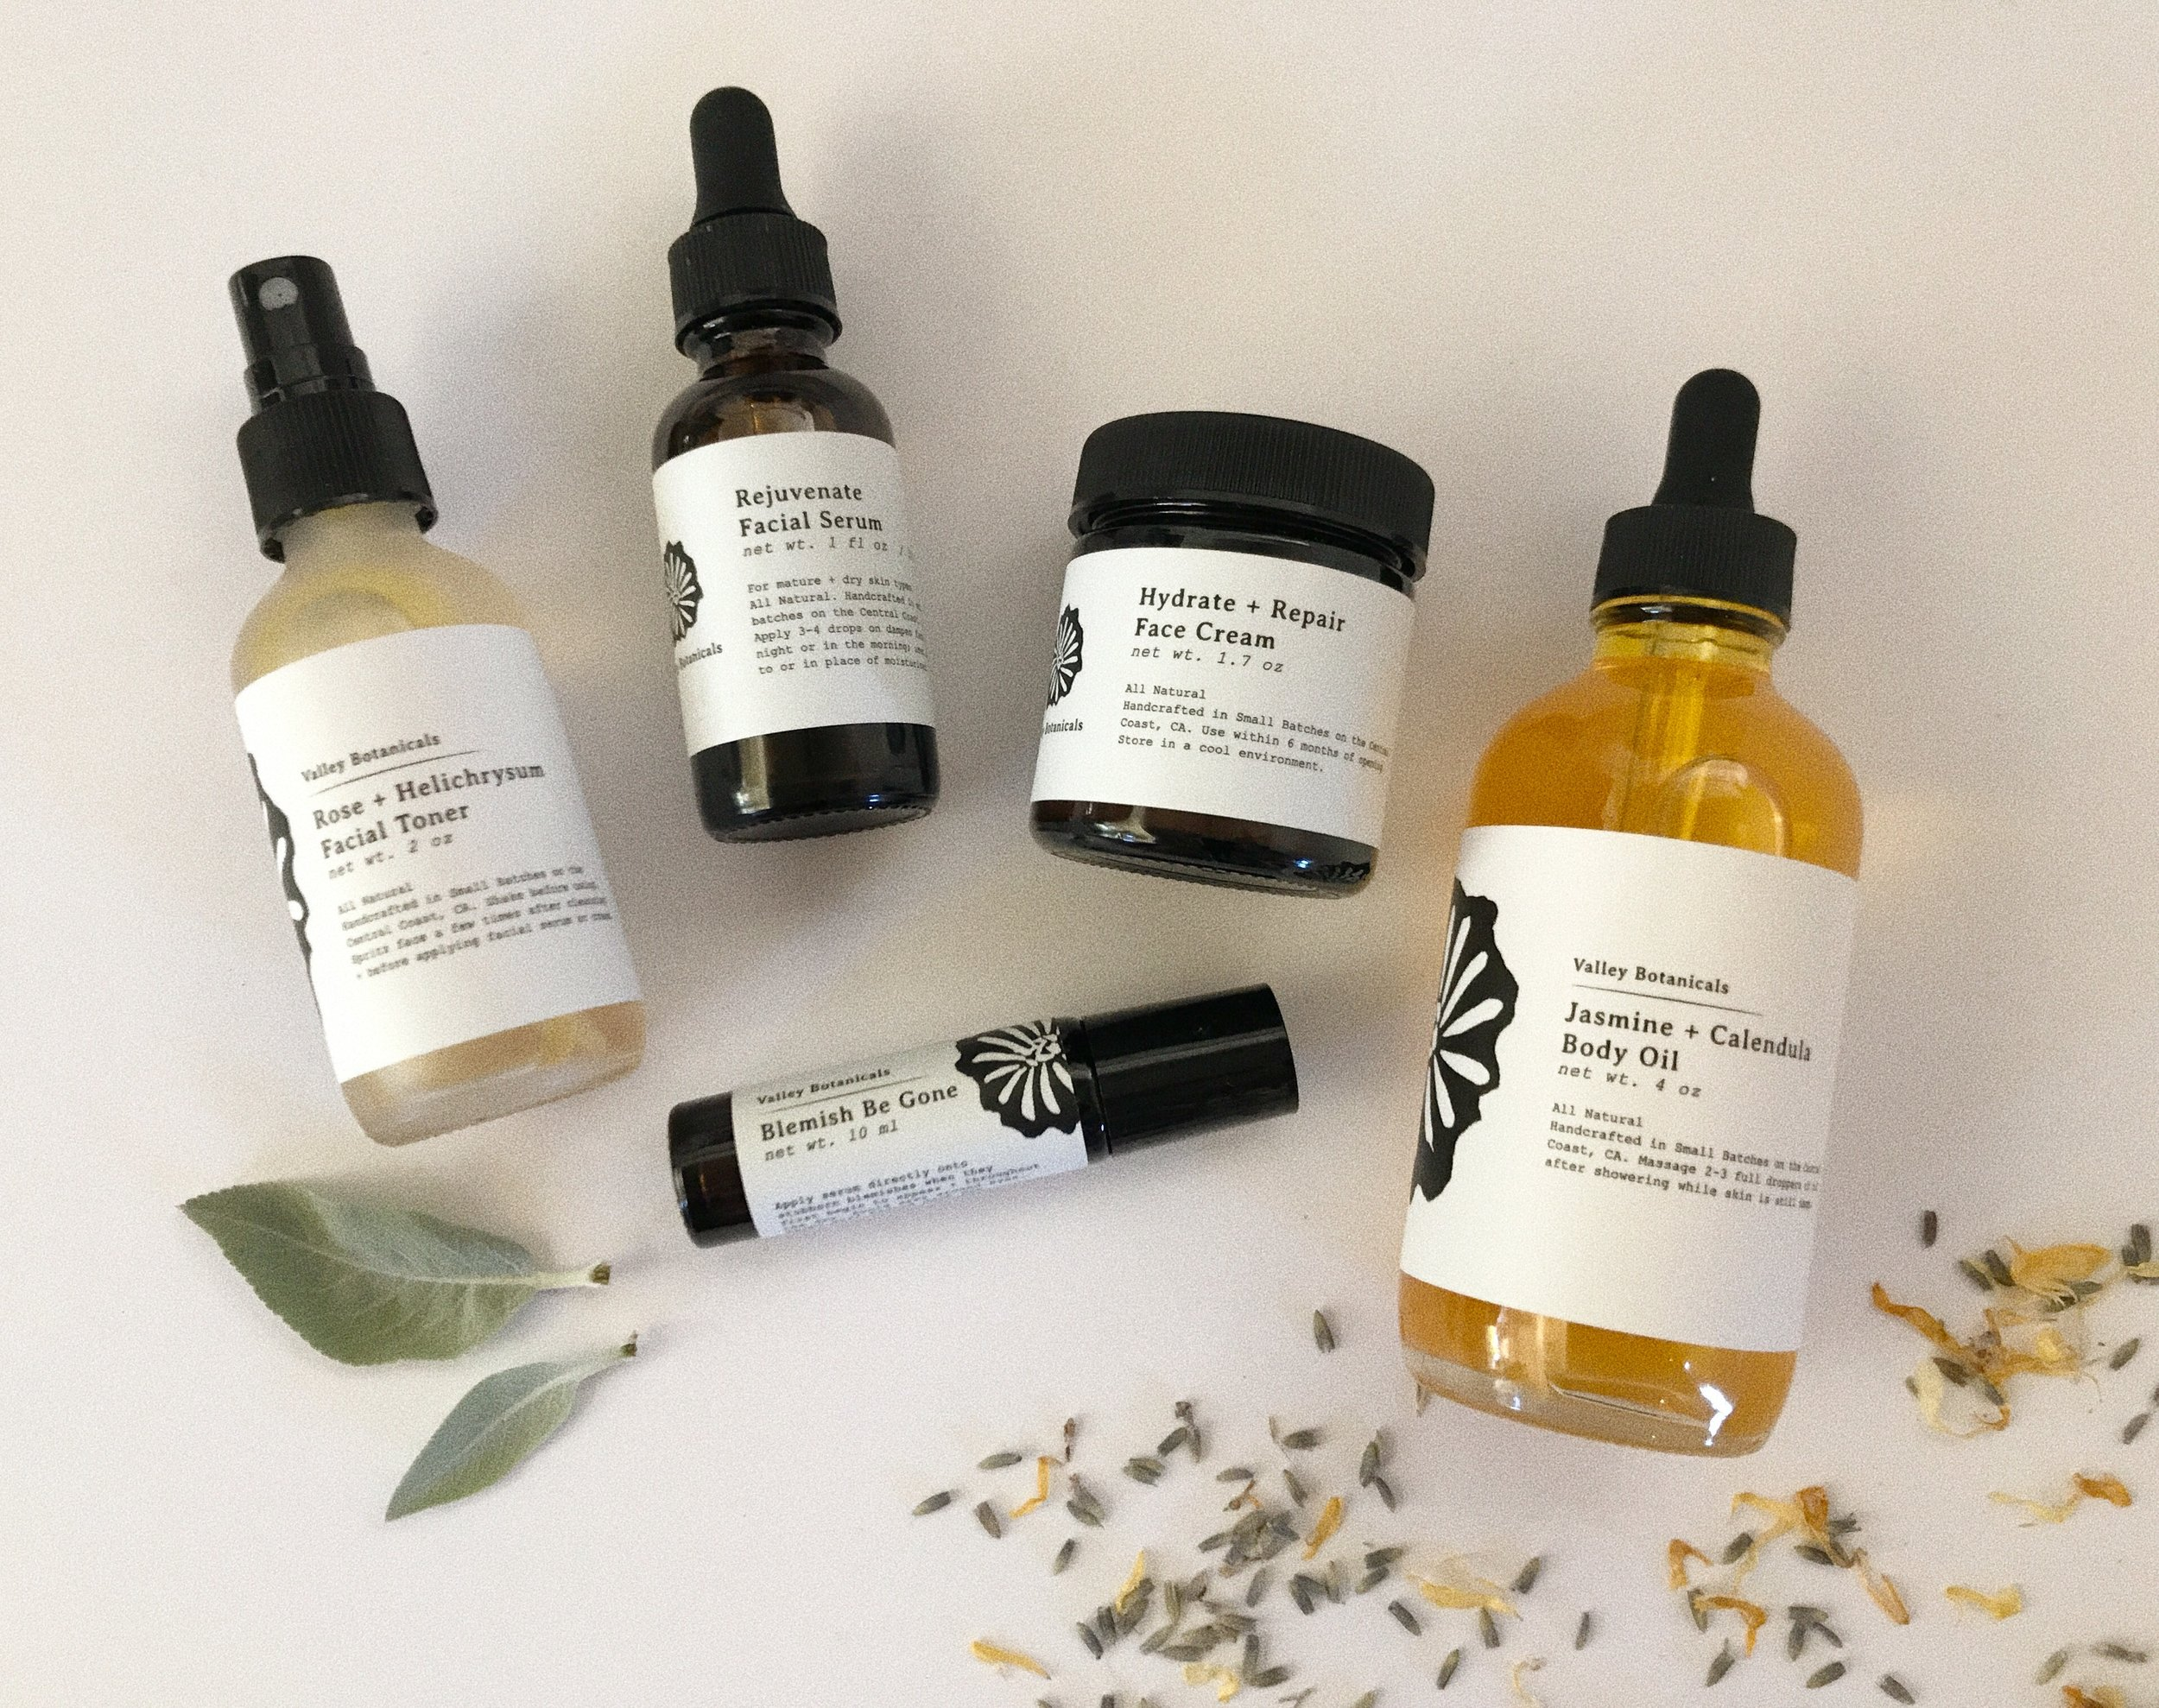 Valley Botanicals Product Line - Available on ETSY